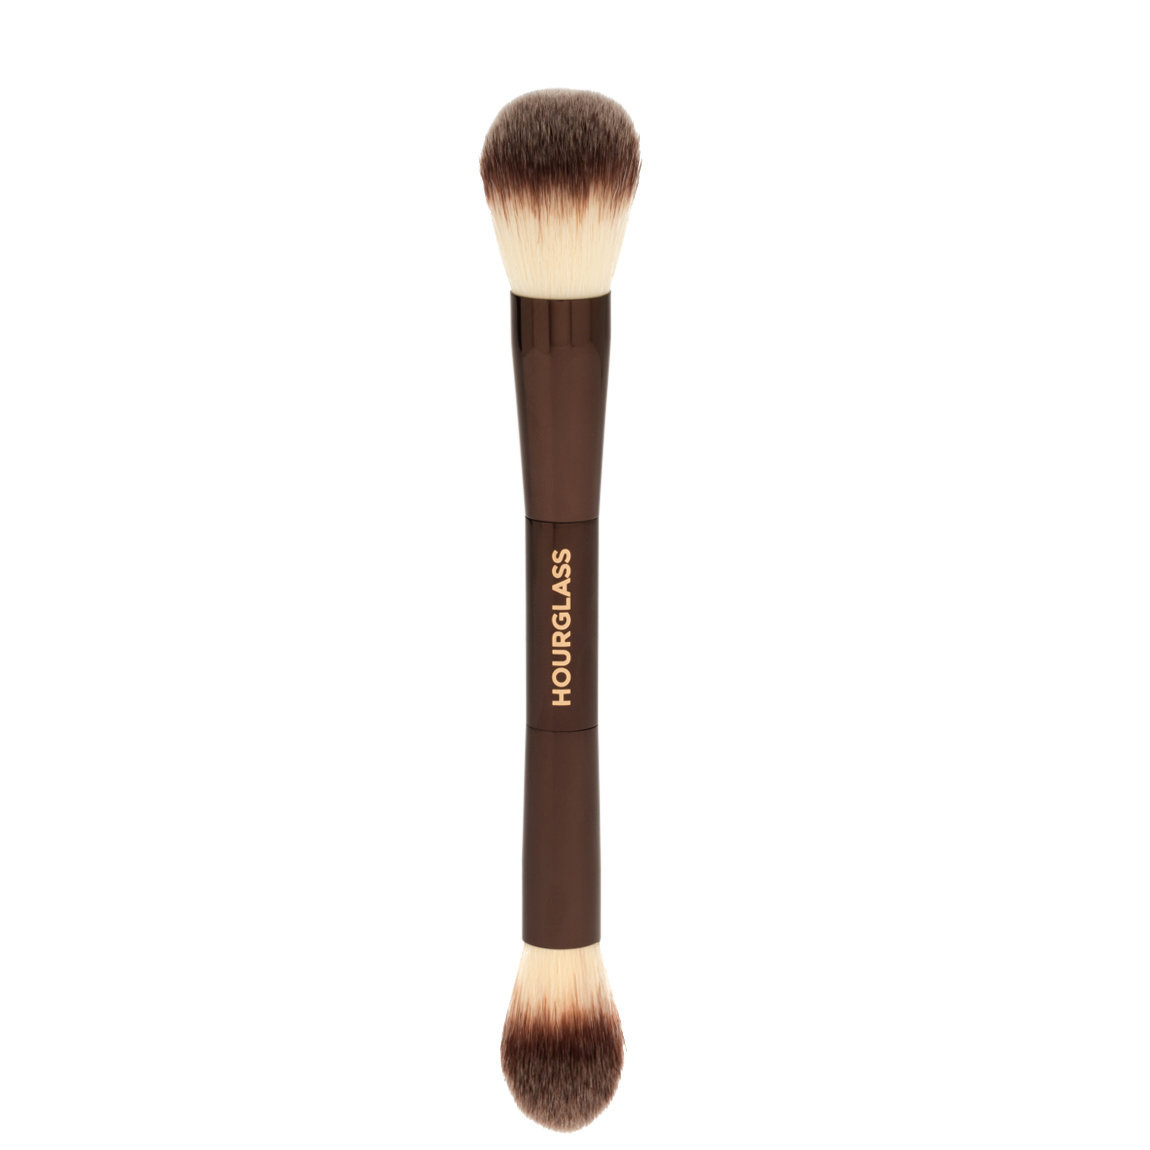 Hourglass Ambient Lighting Edit Brush product smear.